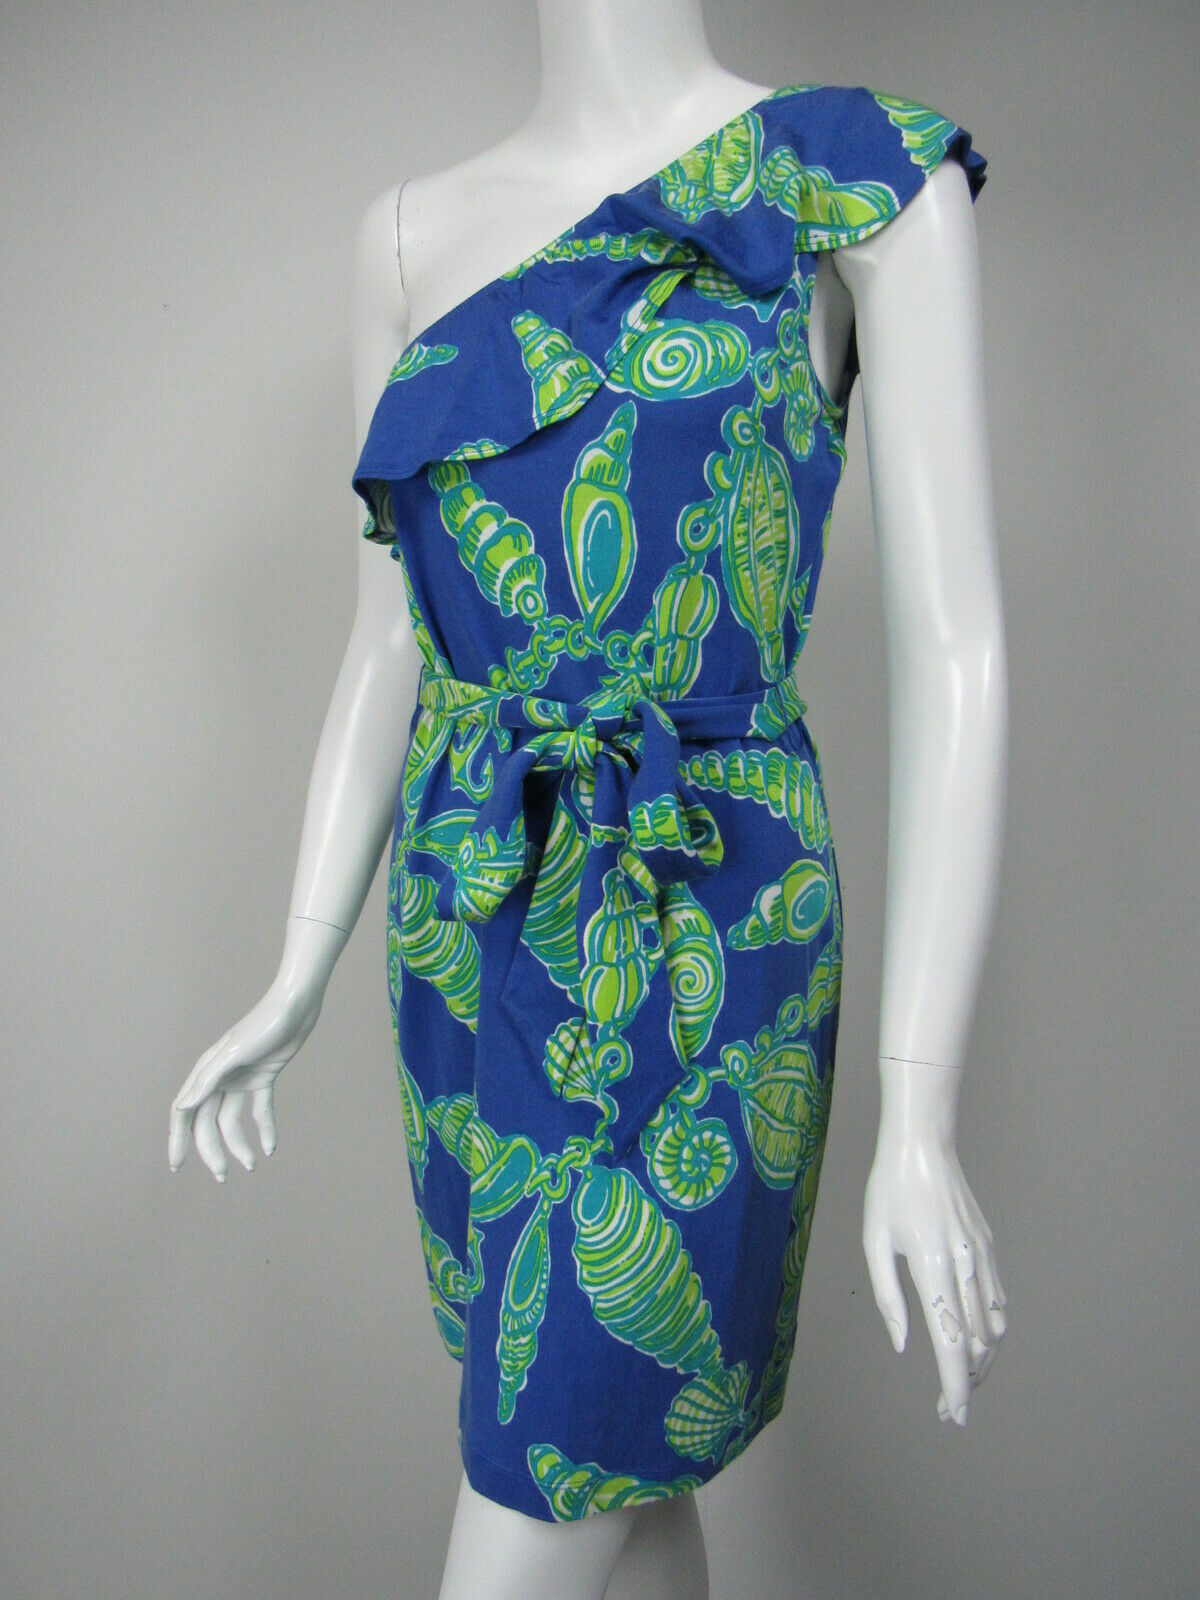 LILLY PULITZER PULITZER PULITZER Robyn bluee Lime Silk Cotton Jersey Ruffle One Shoulder Dress sz M d25e4f